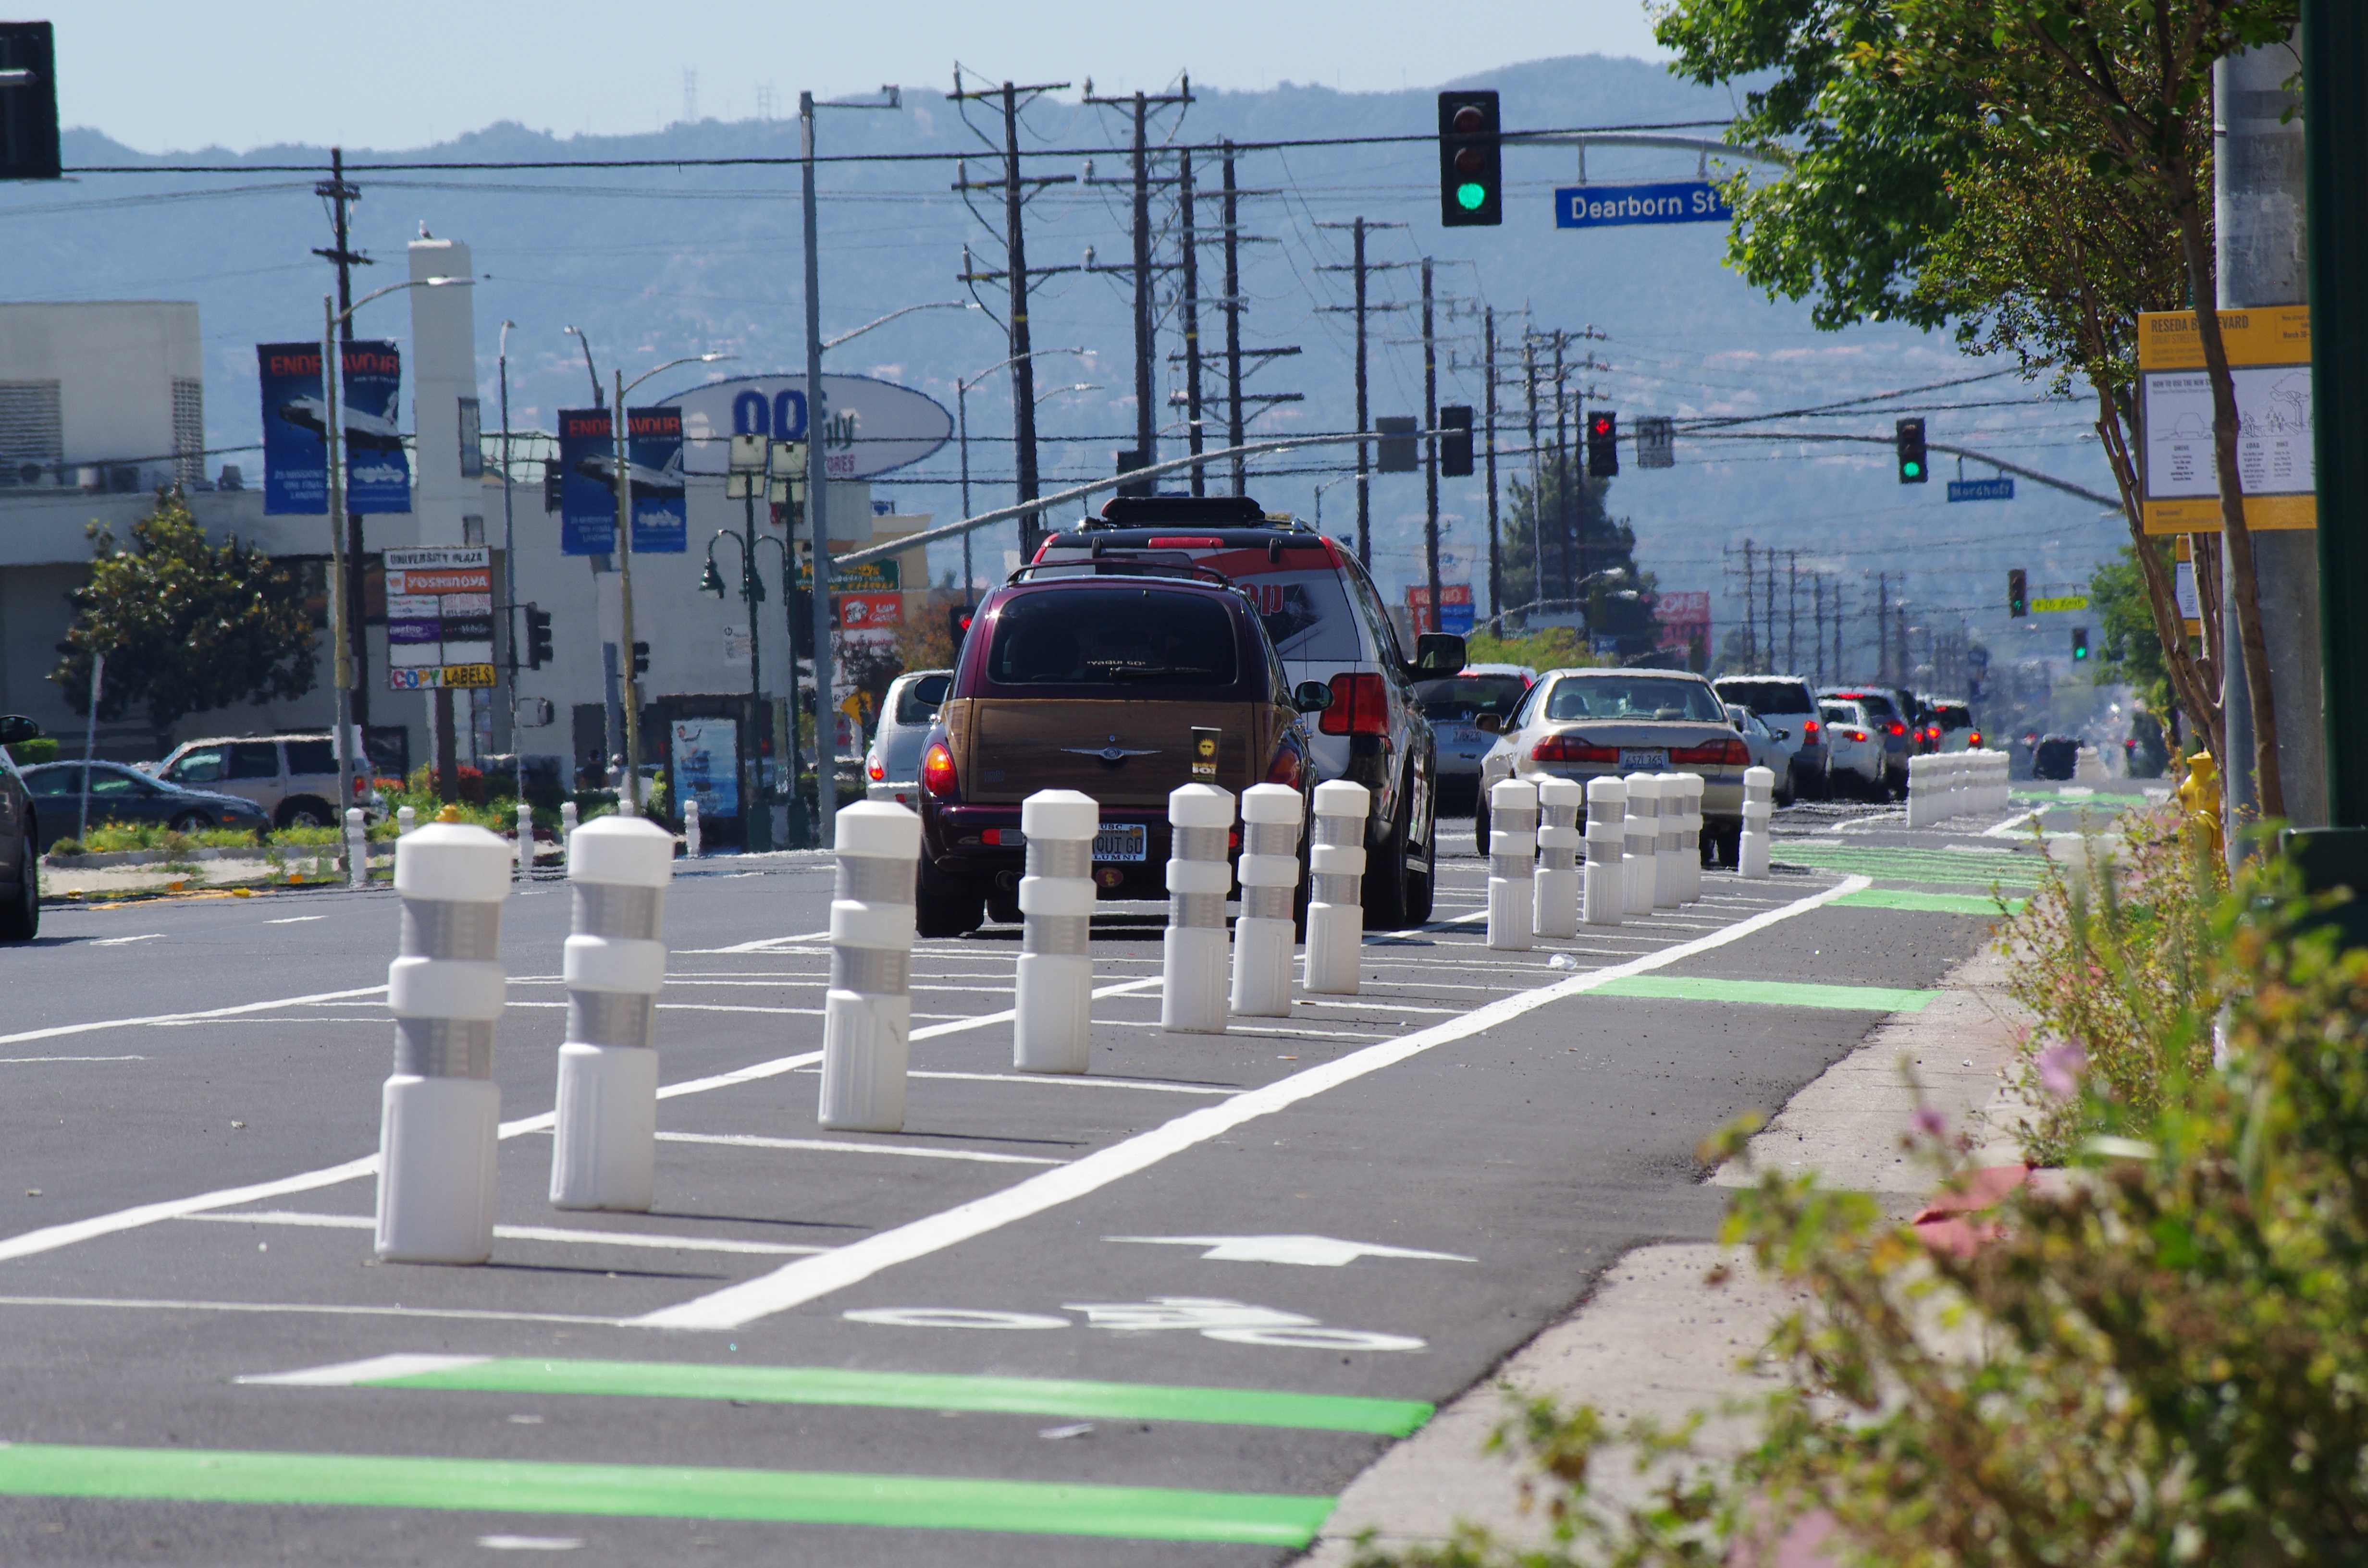 Part of the Great Streets Project, the new parking-protected bicycle lanes along Reseda Blvd., will be from Plummer St. and Parthenia St., protecting cyclist for a one-mile stretch (Matthew Delgado / Staff Photographer)